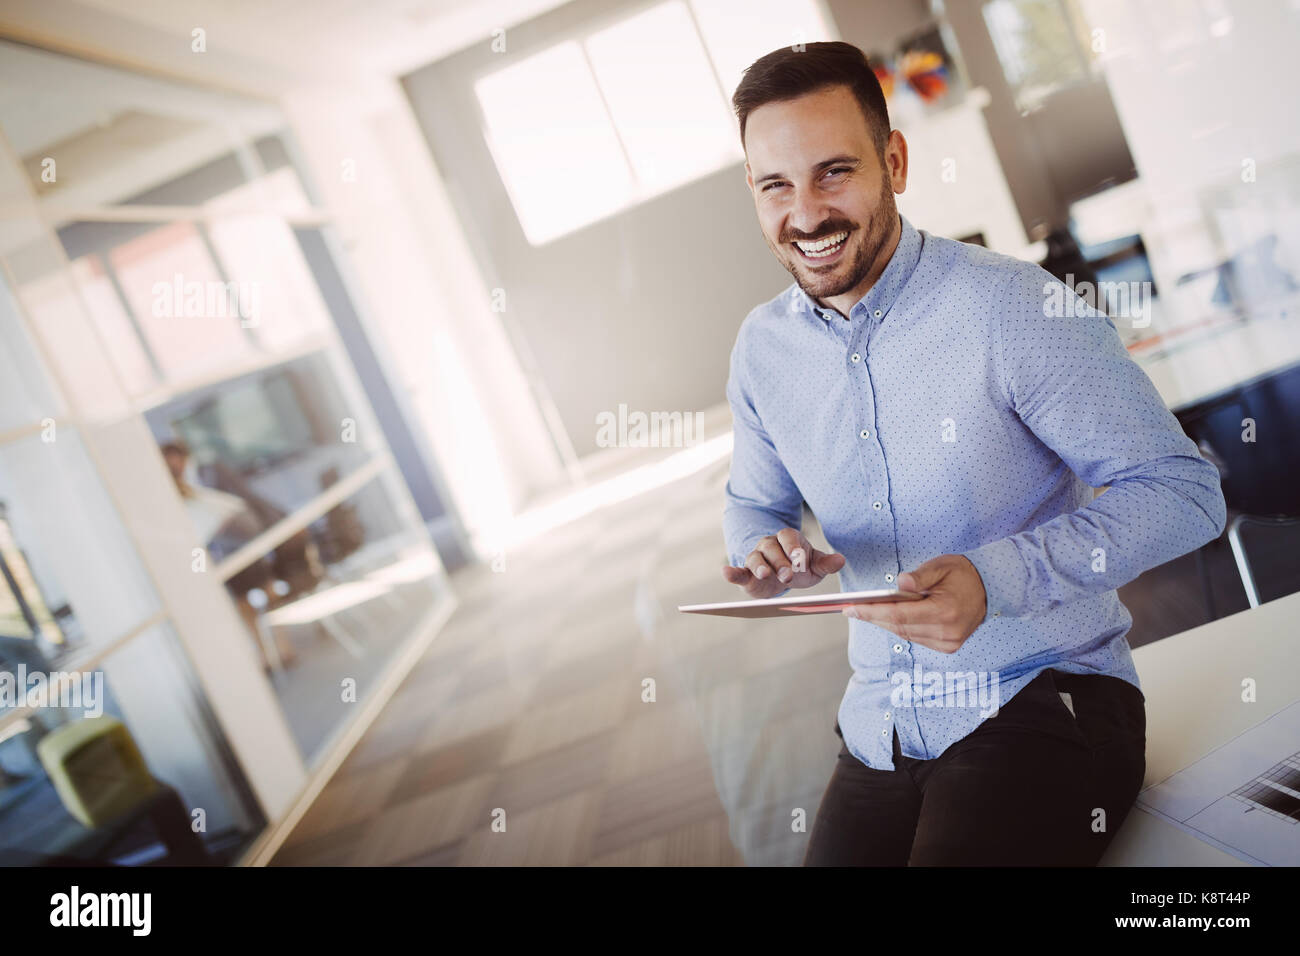 Portrait of handsome successful architect holding tablet - Stock Image